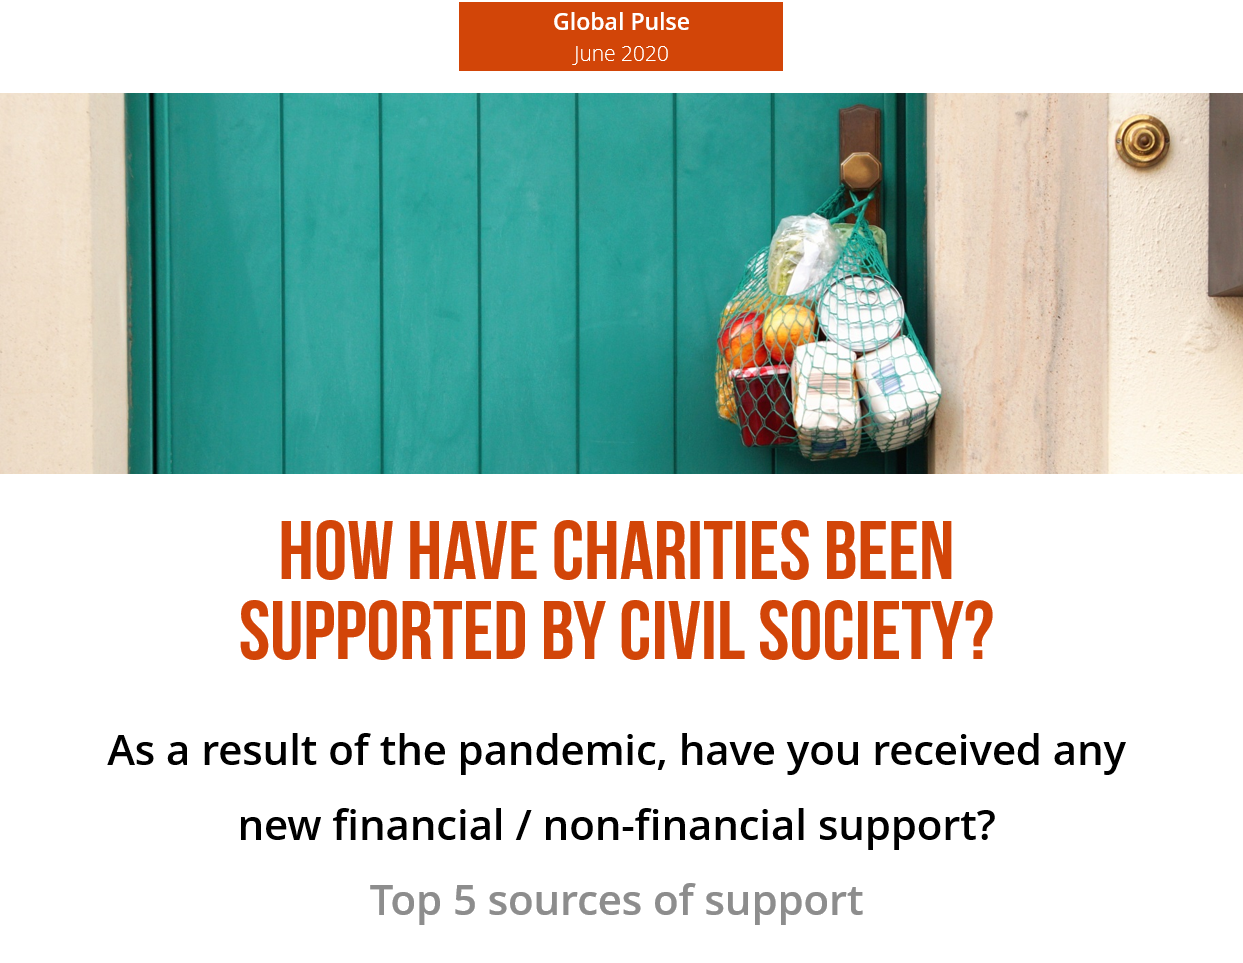 Poll 4 - How has Civil Society supported Charities?